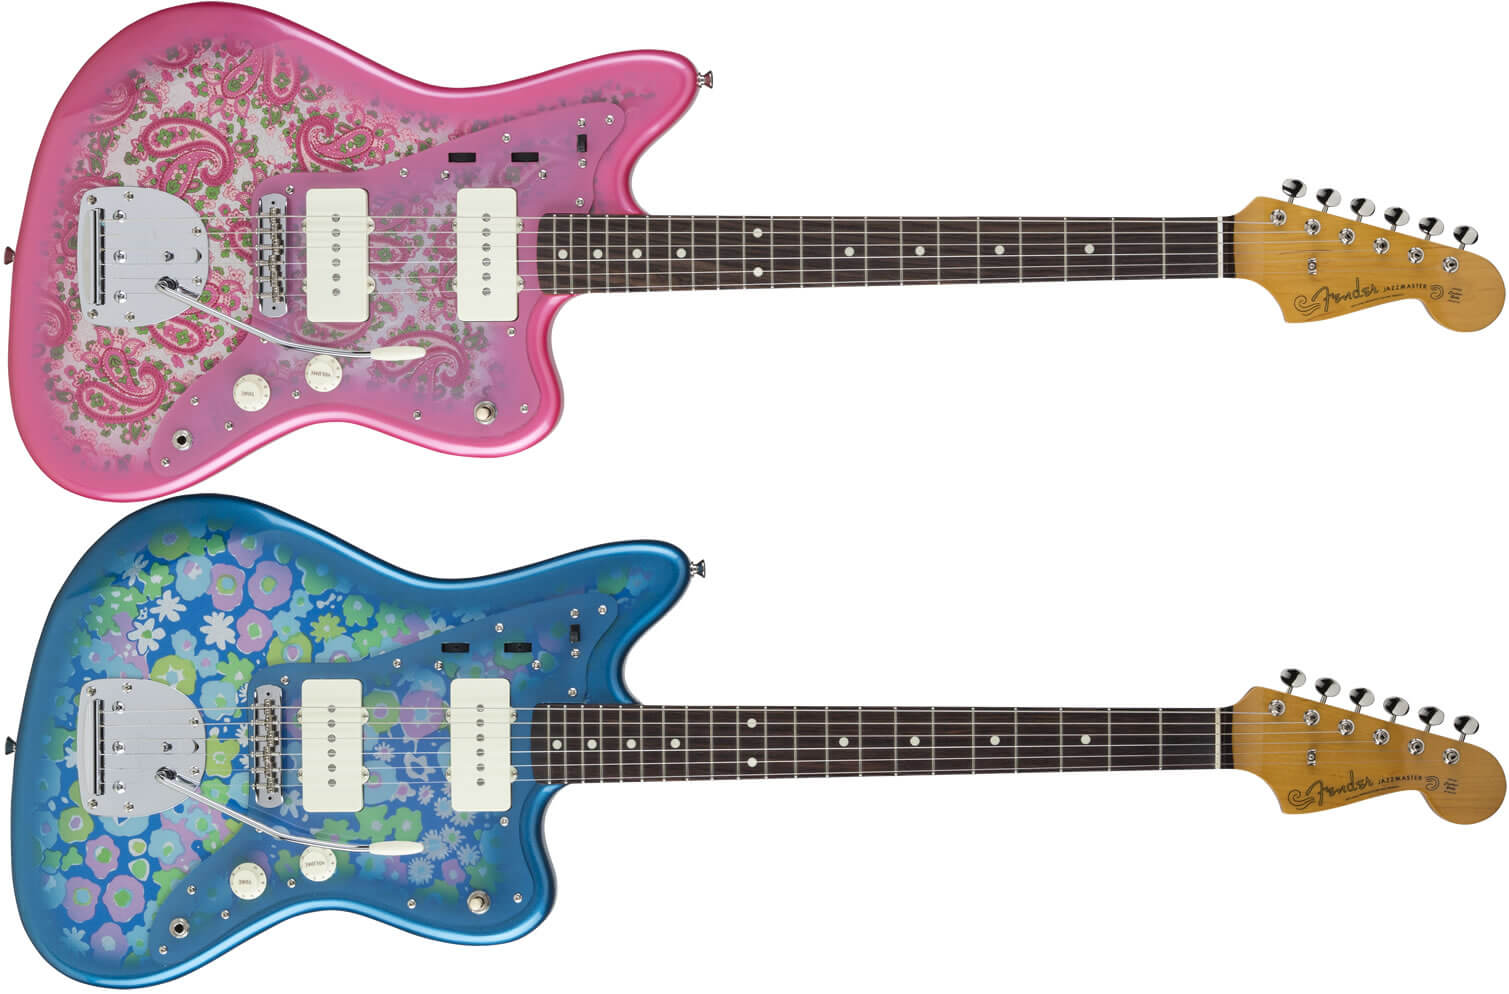 PINK PAISLEY、BLUE FLOWER